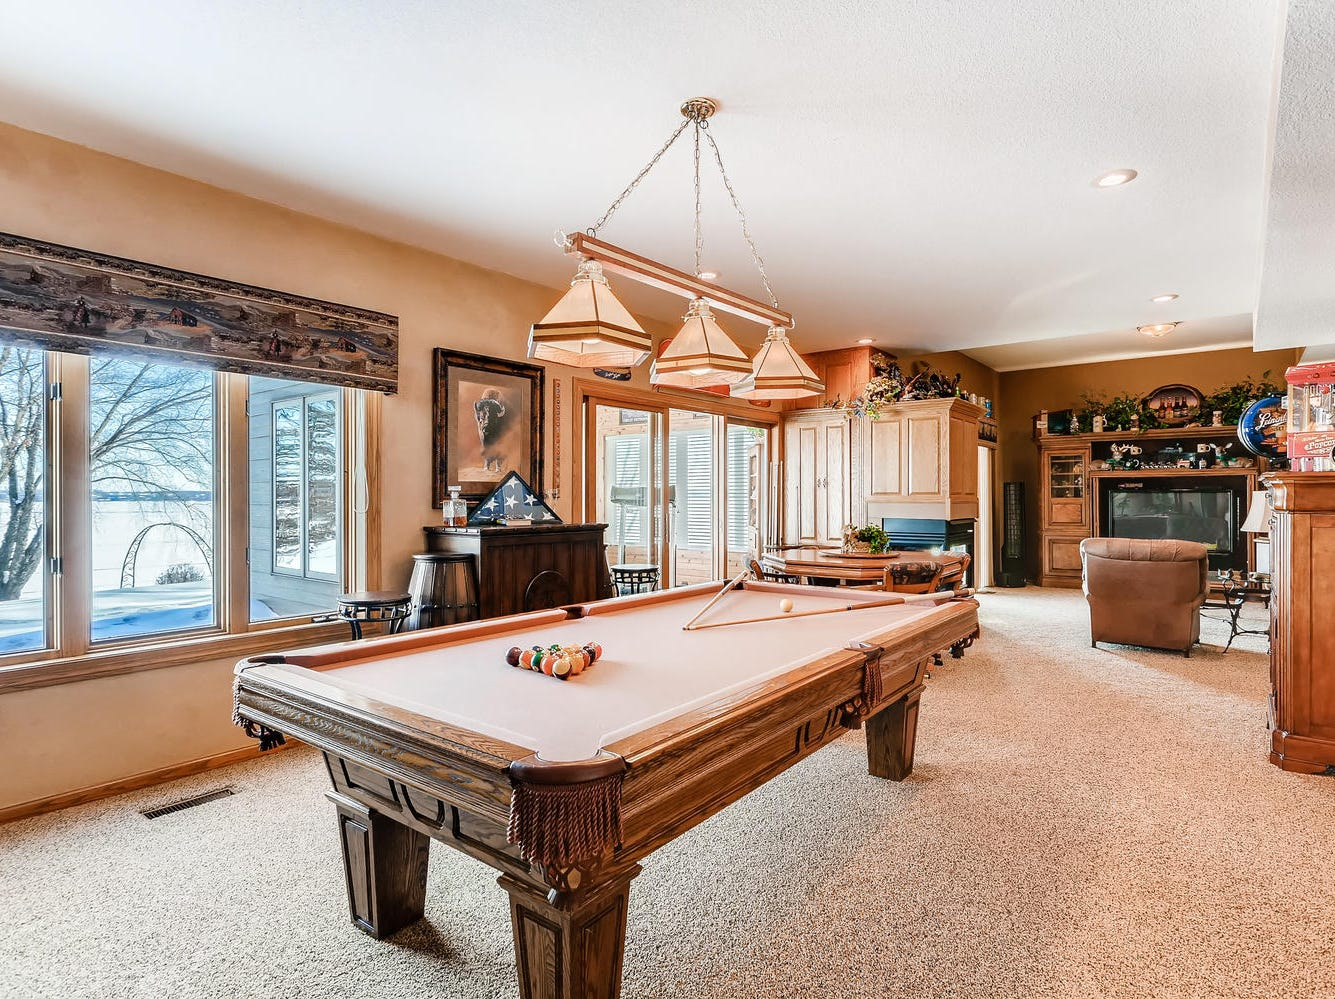 The lower level houses a large recreational space perfect for billiards and is large enough to accommodate multiple seating areas.